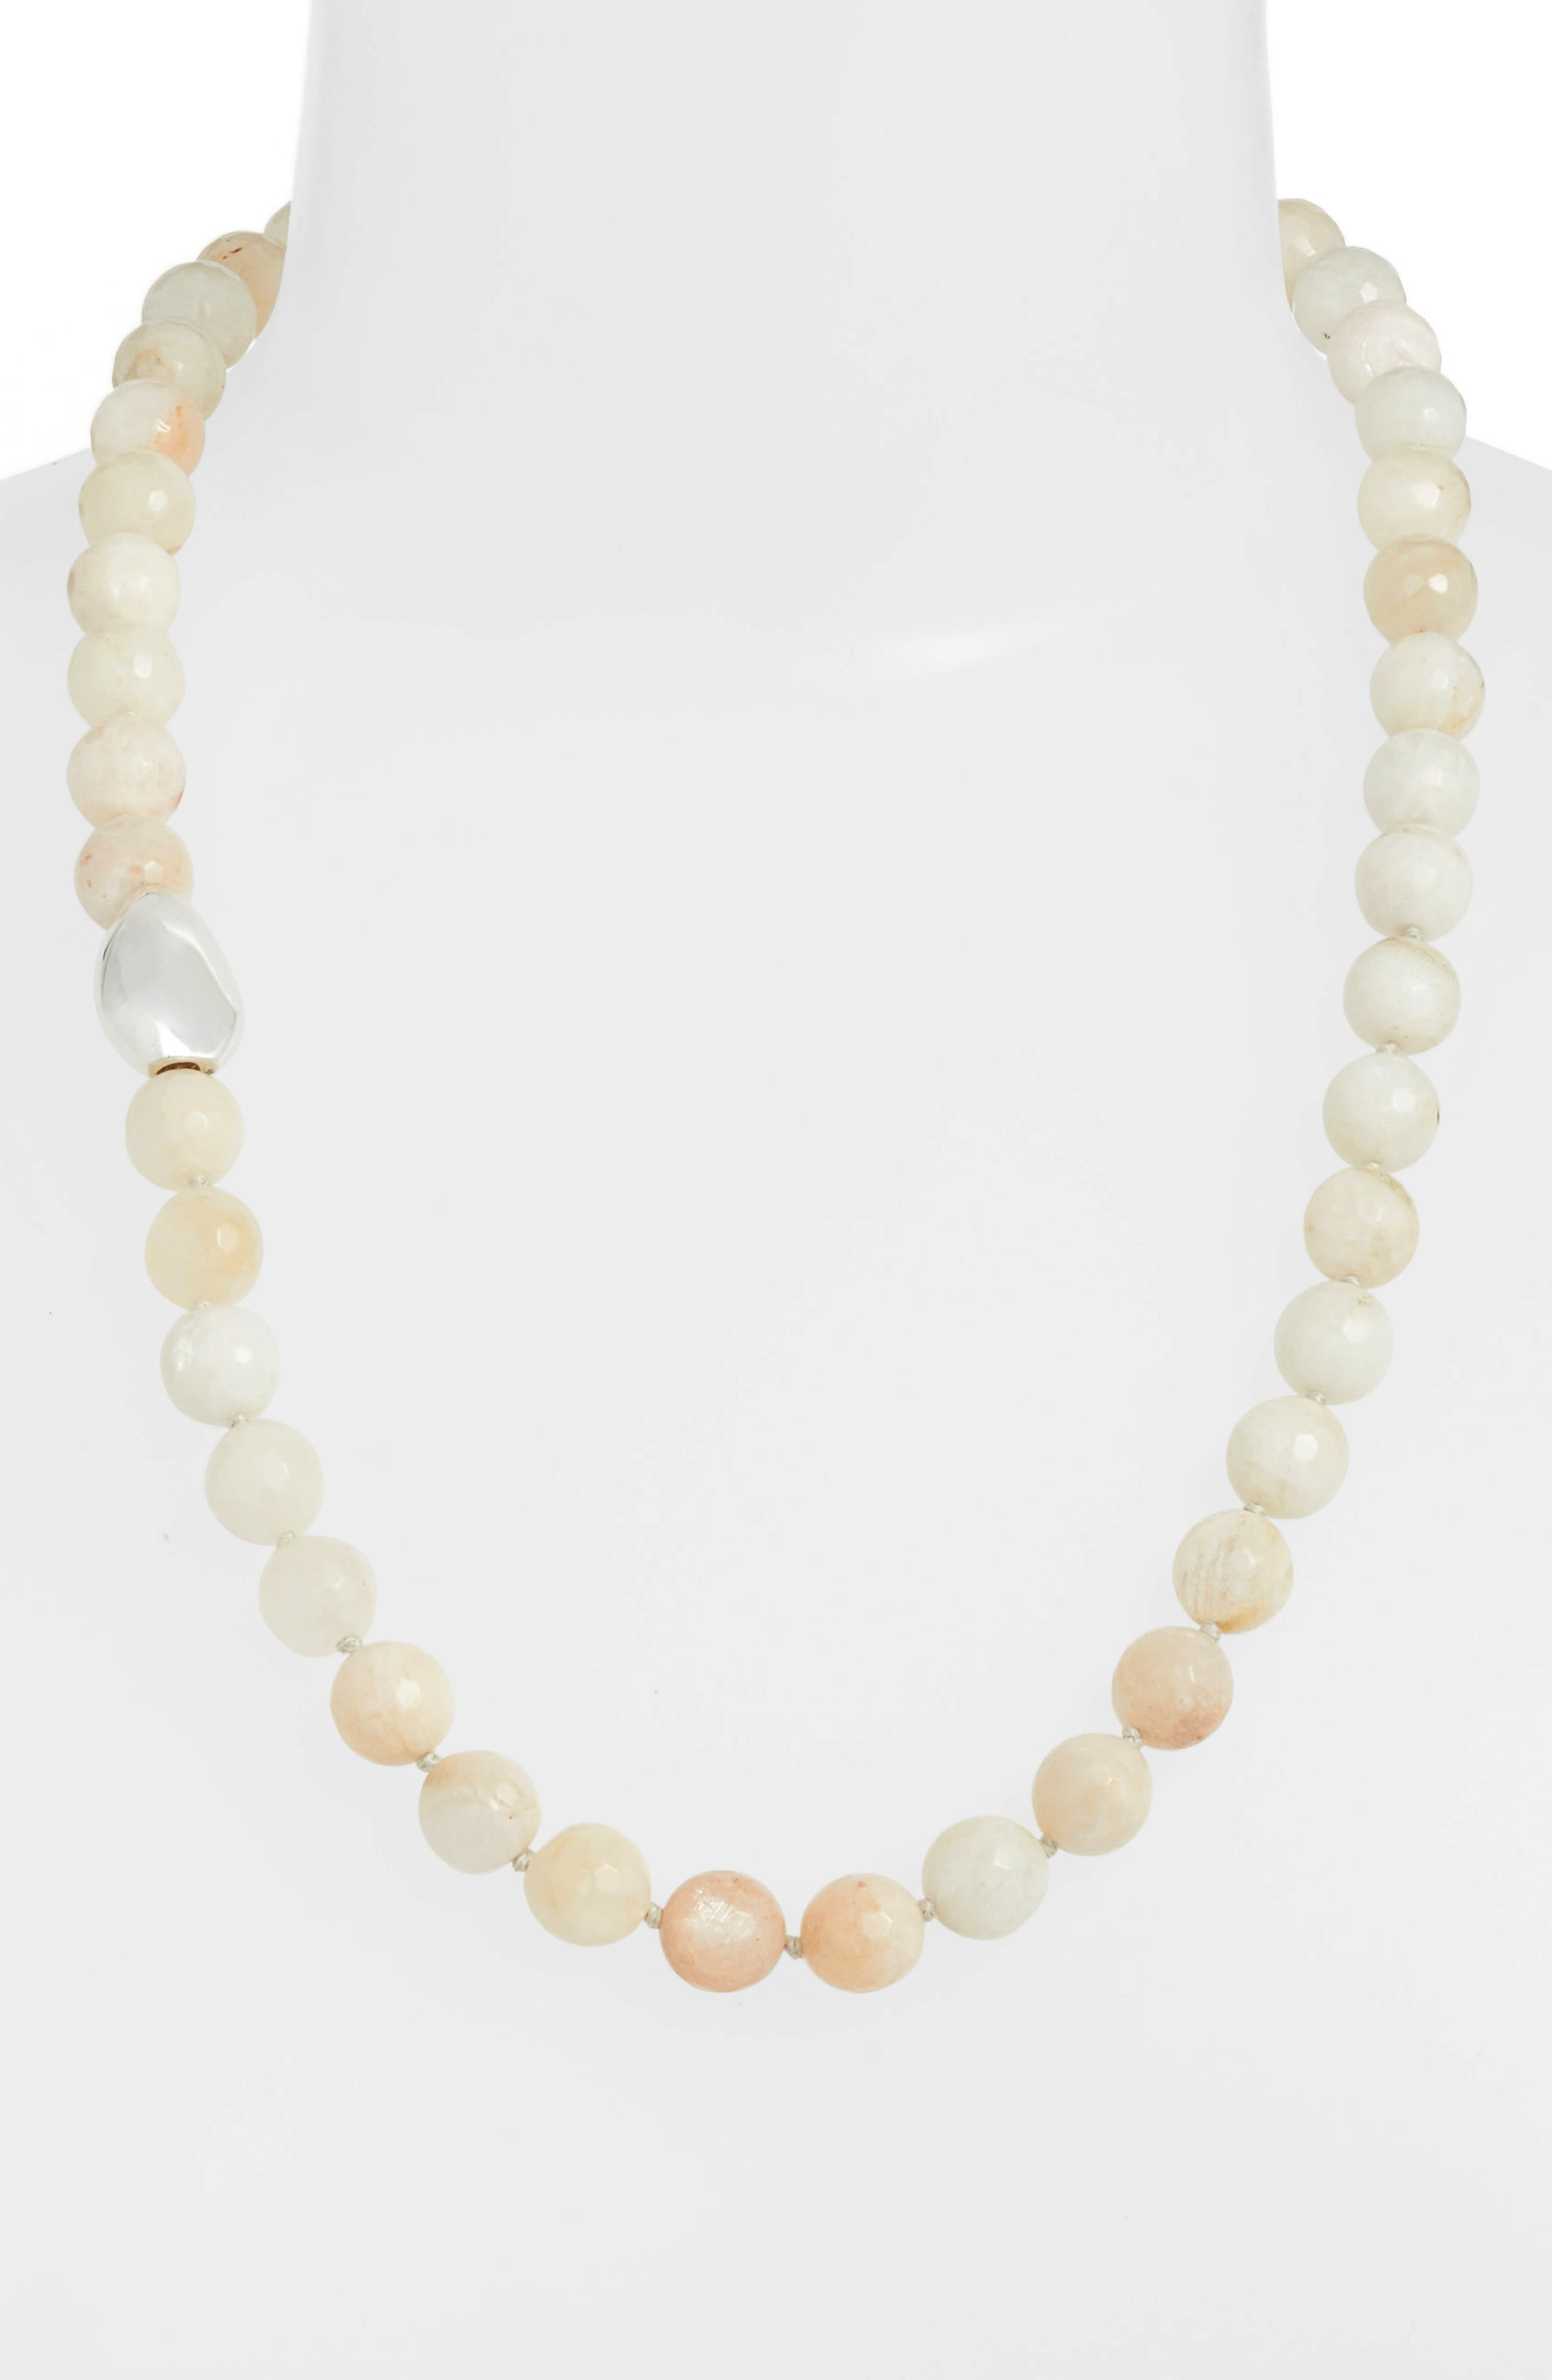 White Moonstone Necklace,                             Main thumbnail 1, color,                             White W/ Silver